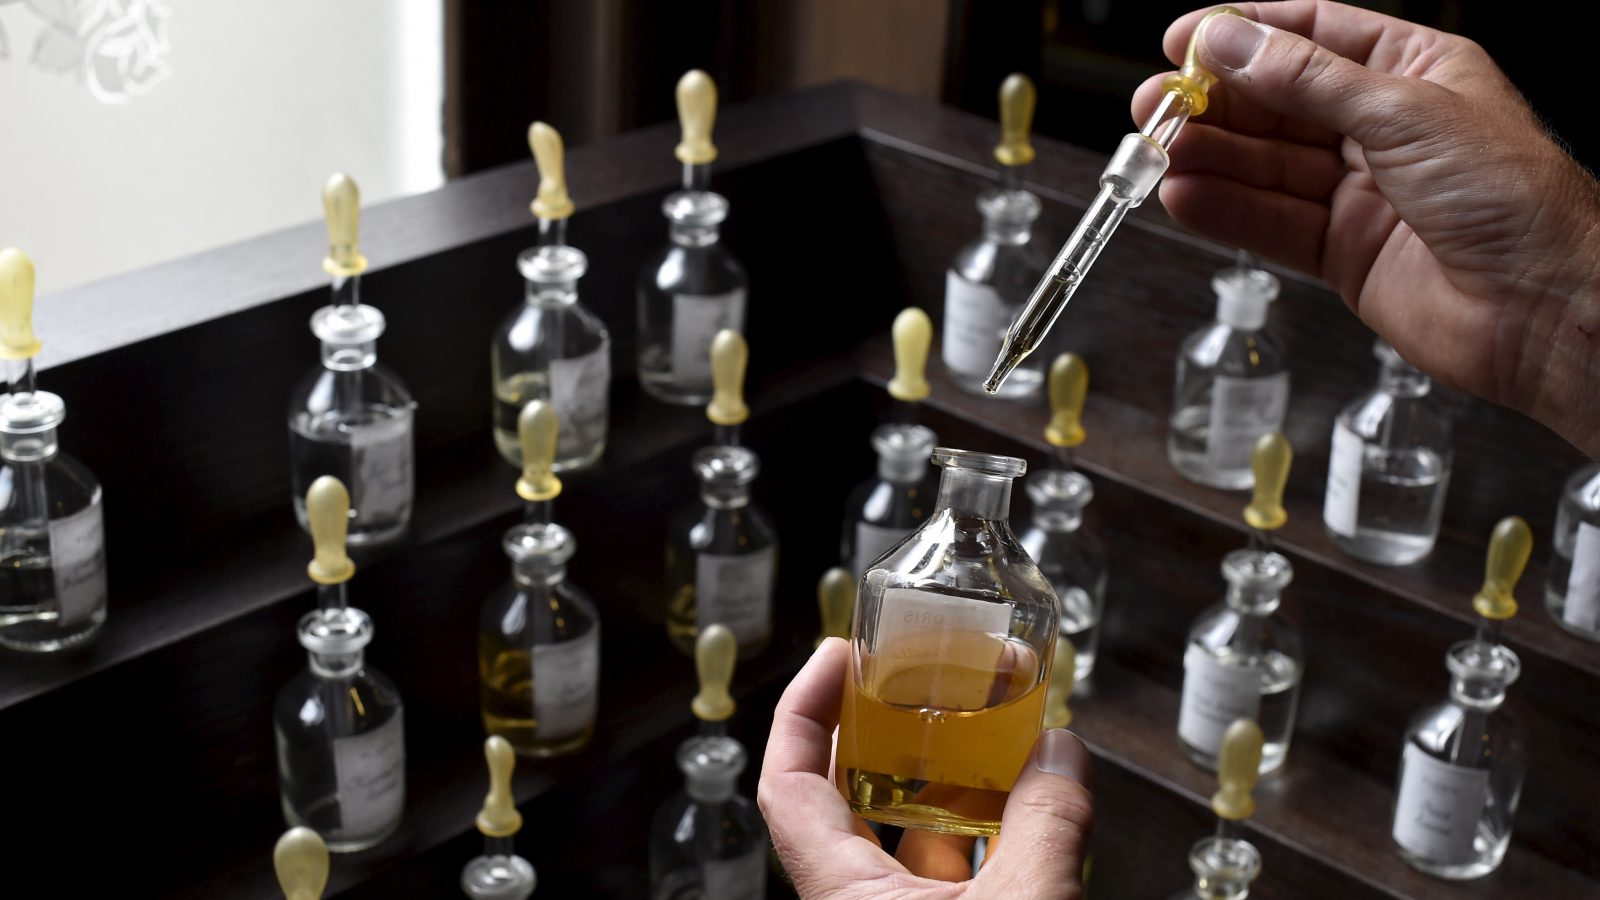 Director of perfumer Floris, Edward Bodenham, holds a pipette of vanilla as he mixes ingredients in his store in central London, Britain, August 19, 2015. Floris, established in 1730, holds a warrant as perfumer to Queen Elizabeth. Every year Queen Elizabeth grants about 20 royal warrants, the gold emblem of the British monarchy, in a practice dating back to medieval times. The warrant holders can display the certificate and use the royal coat of arms in their marketing. The warrants lasting five years can help businesses break into new markets overseas, using their role as supplier to the royal family as a gauge of quality. On September 9, Queen Elizabeth will overtake Queen Victoria as Britain's longest-serving monarch. Picture taken August 19, 2015. REUTERS/Toby Melville - RTX1QPS6